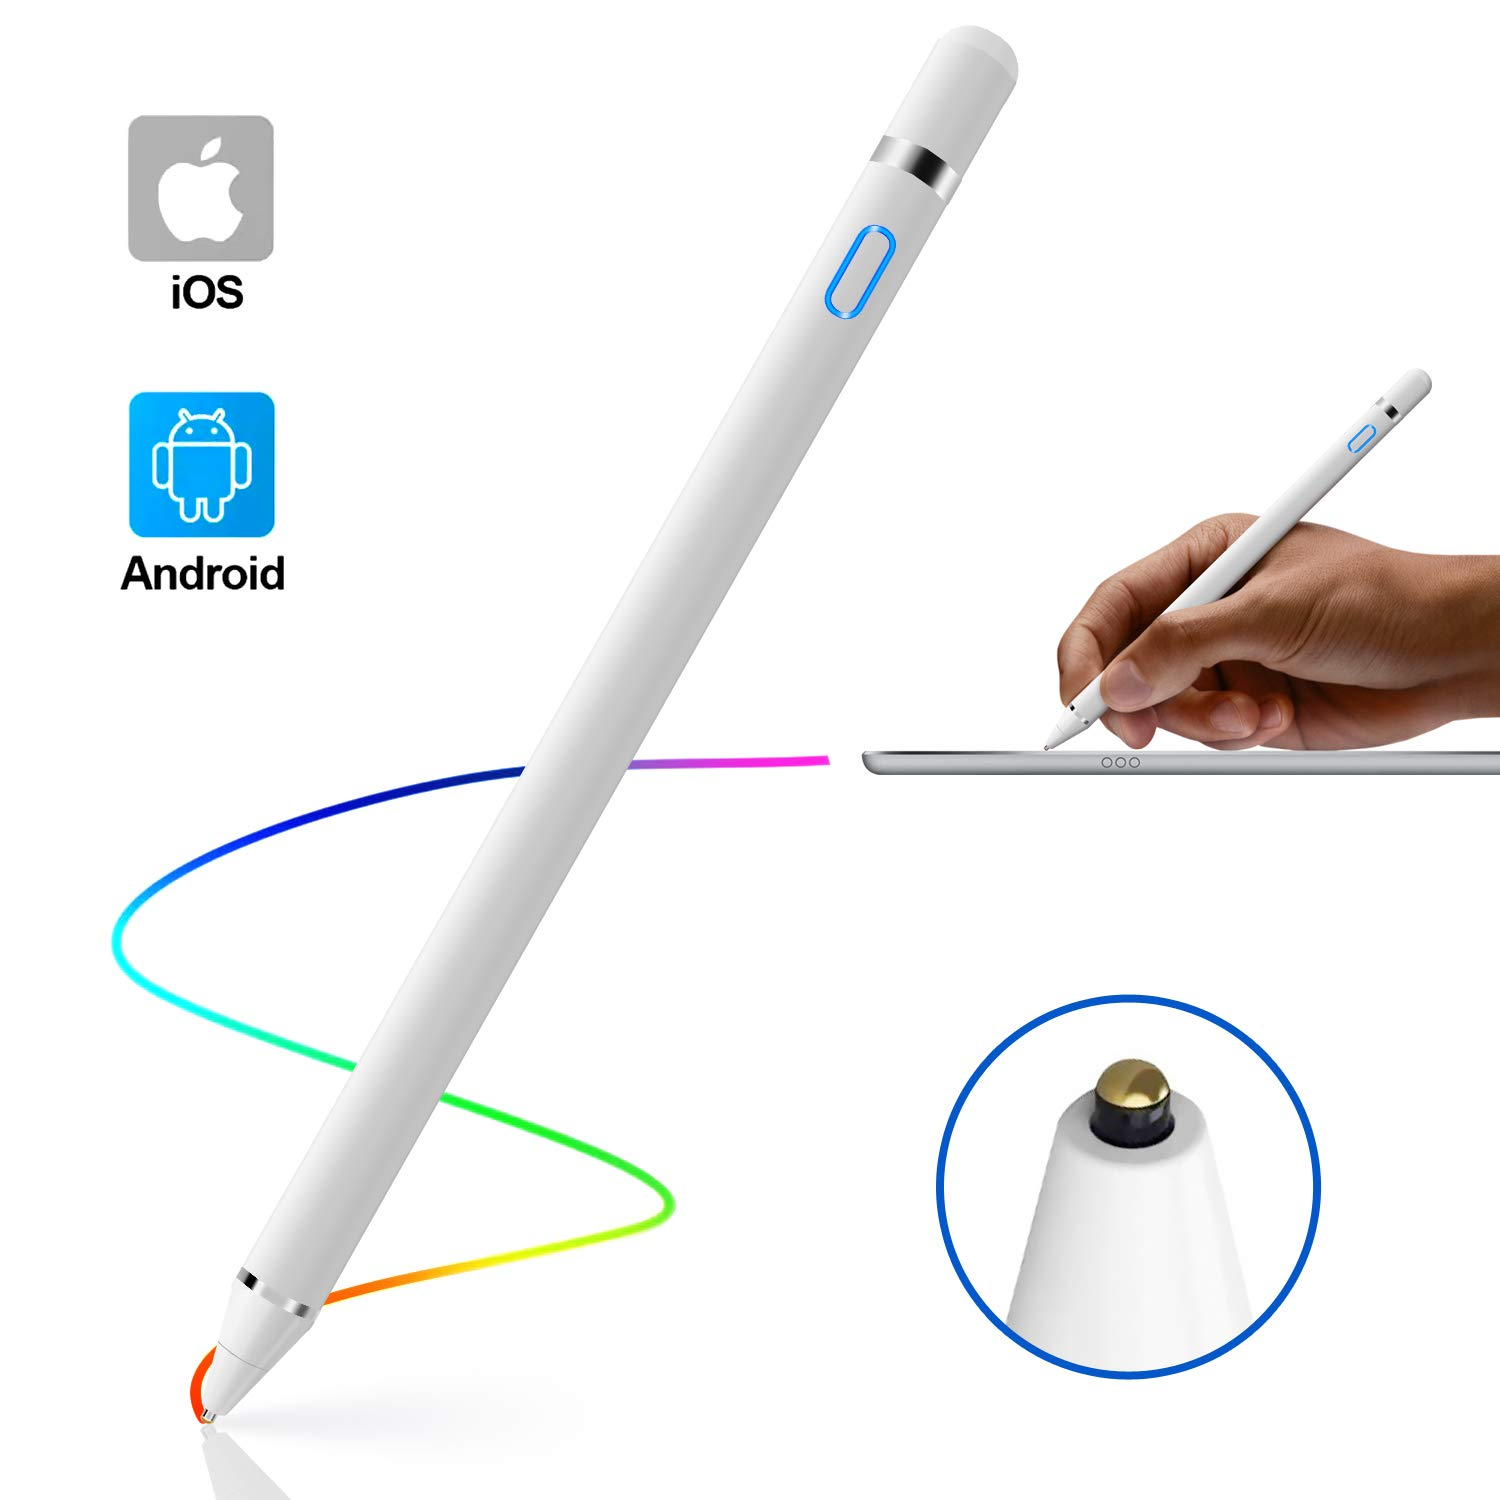 Stylus Pen for Touch Screens, Rechargeable 1.45mm Fine Point Tablet Stylus Pen, Active Stylus Pen Compatible with iPhone, iPad and Most Tablet by IKALULA by IKALULA